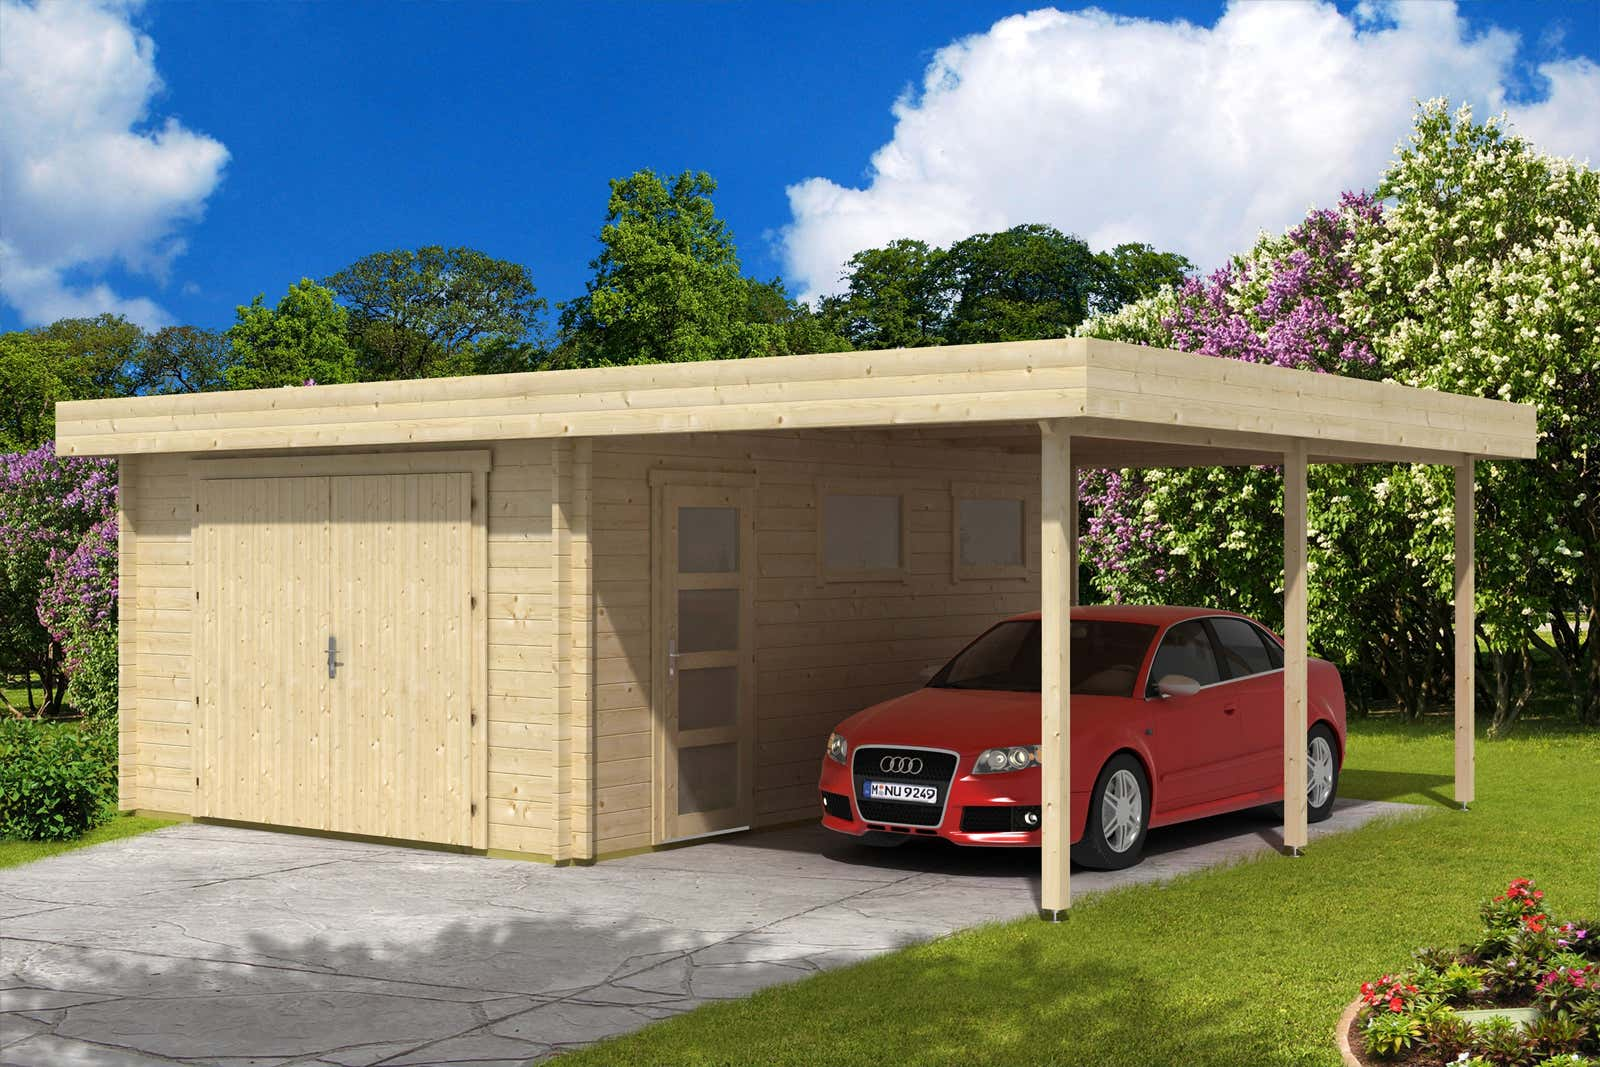 flachdach holzgarage mit carport 44 iso holzgarage mit. Black Bedroom Furniture Sets. Home Design Ideas